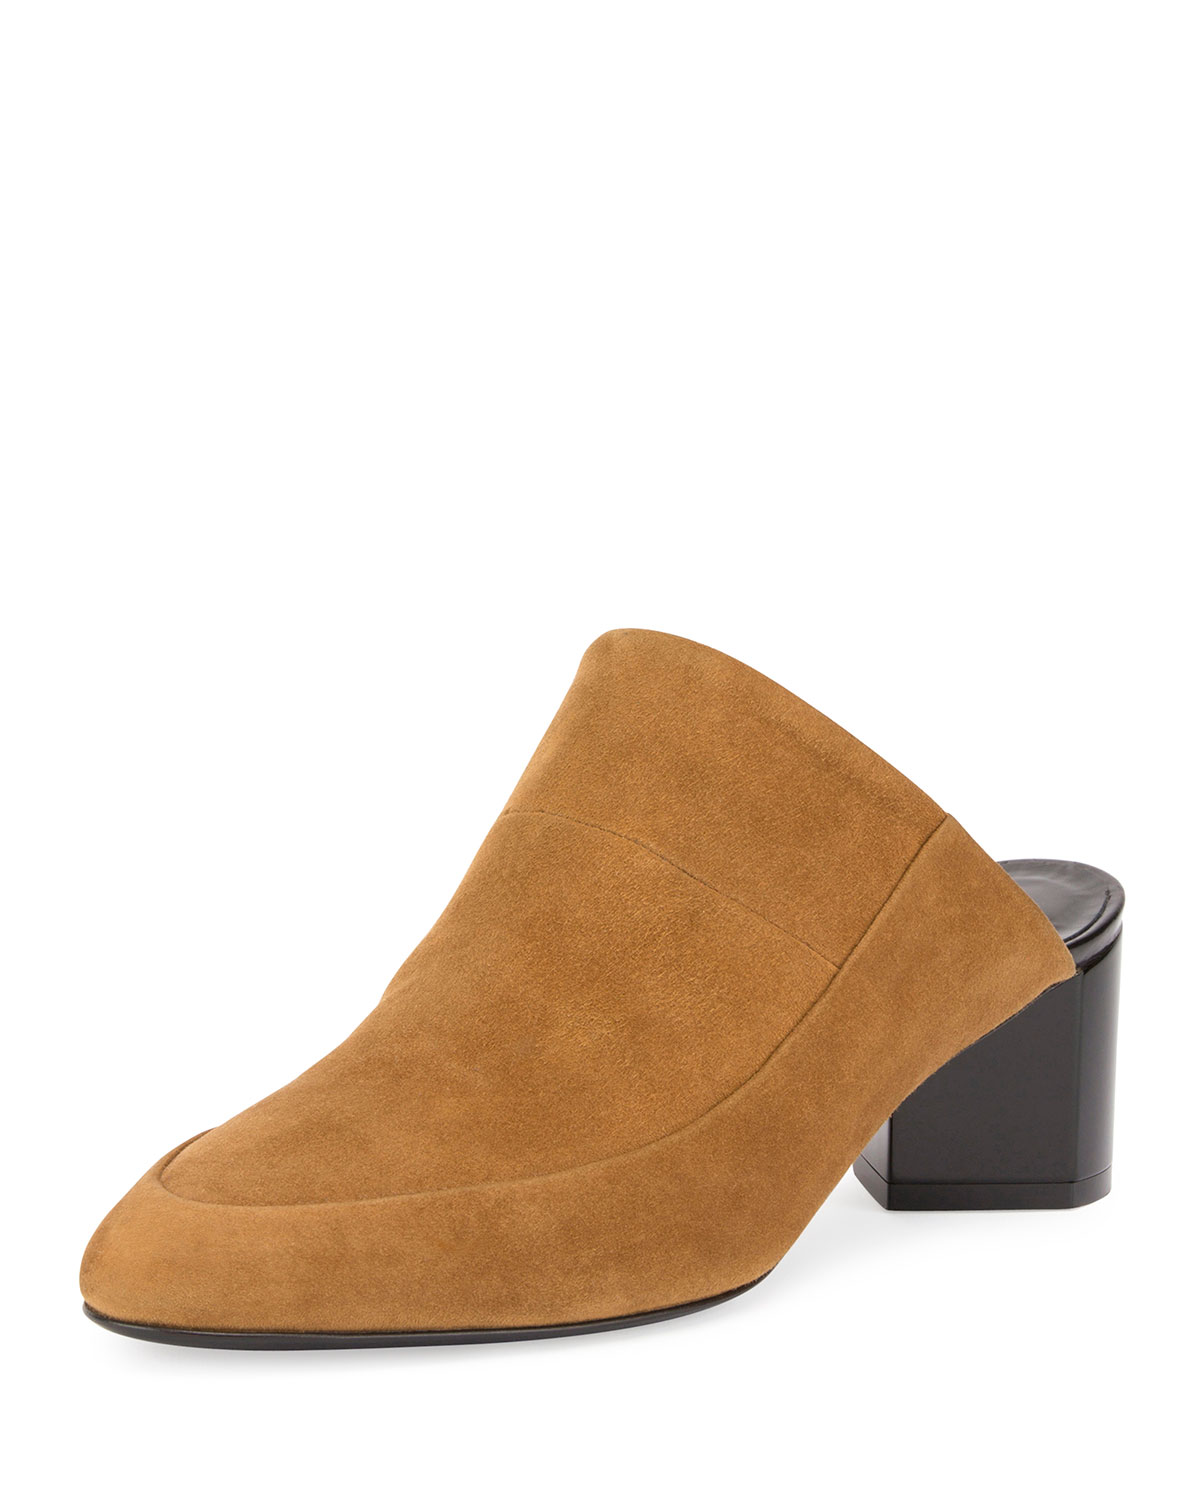 Suede Block-Heel Mule Pump, Tan